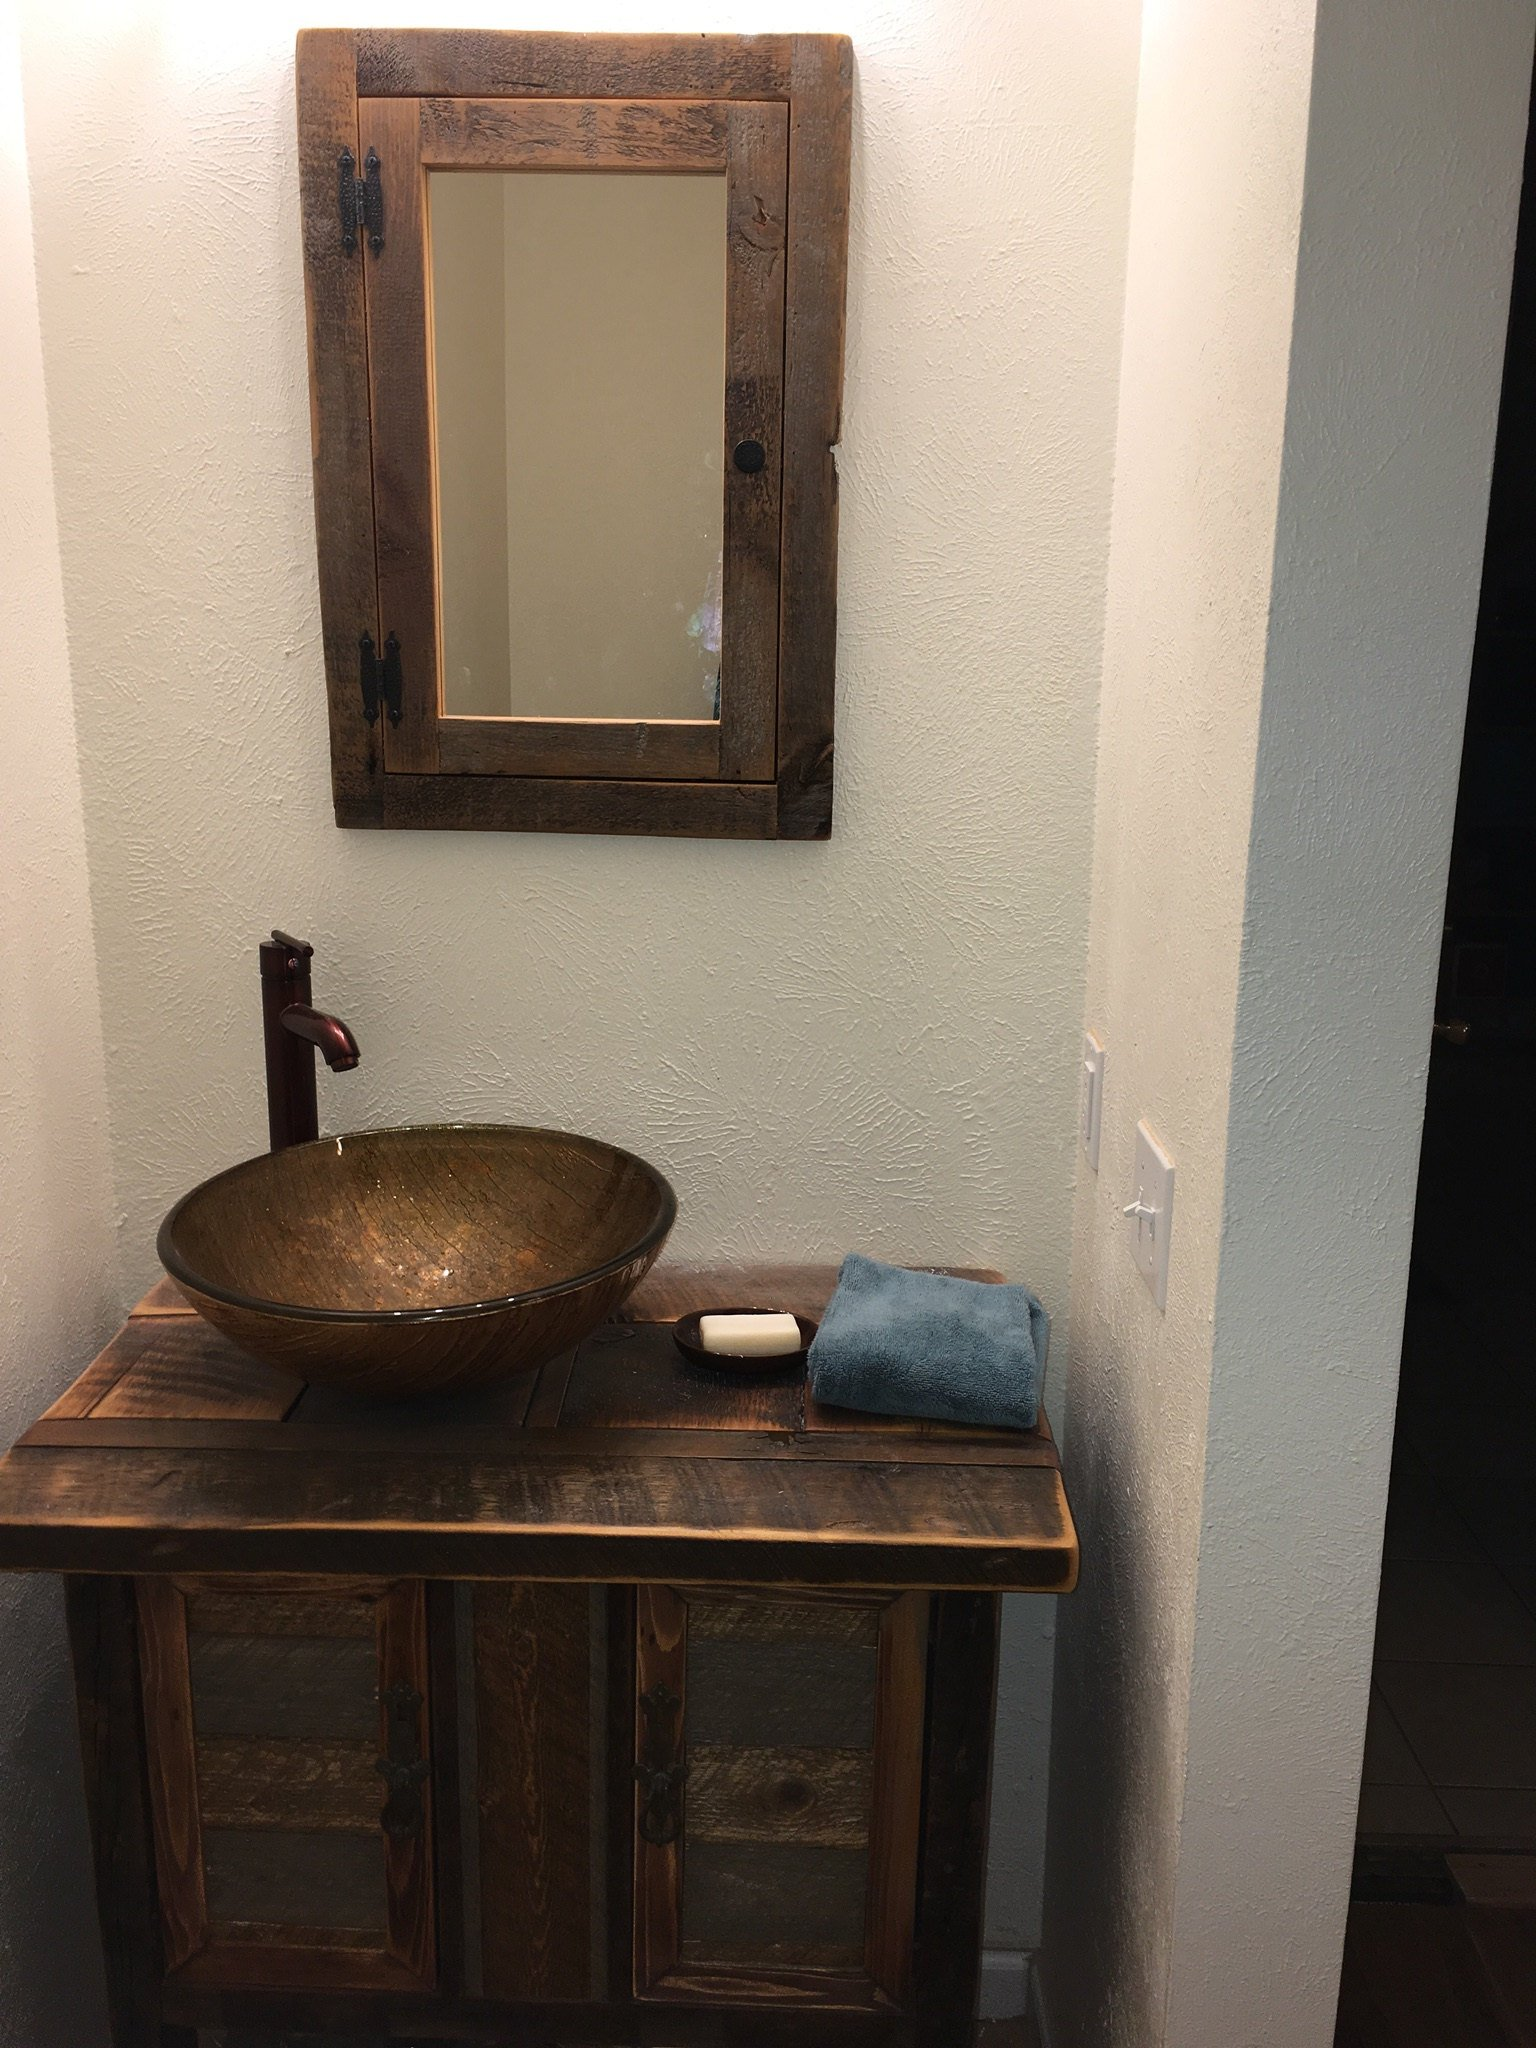 Recessed Barn Wood Medicine Cabinet With Mirror Made From 1800s Barn Wood Rustic Medicine Cabinet In 2019 Rustic Medicine Cabinets Wood Medicine Cabinets Barn Wood